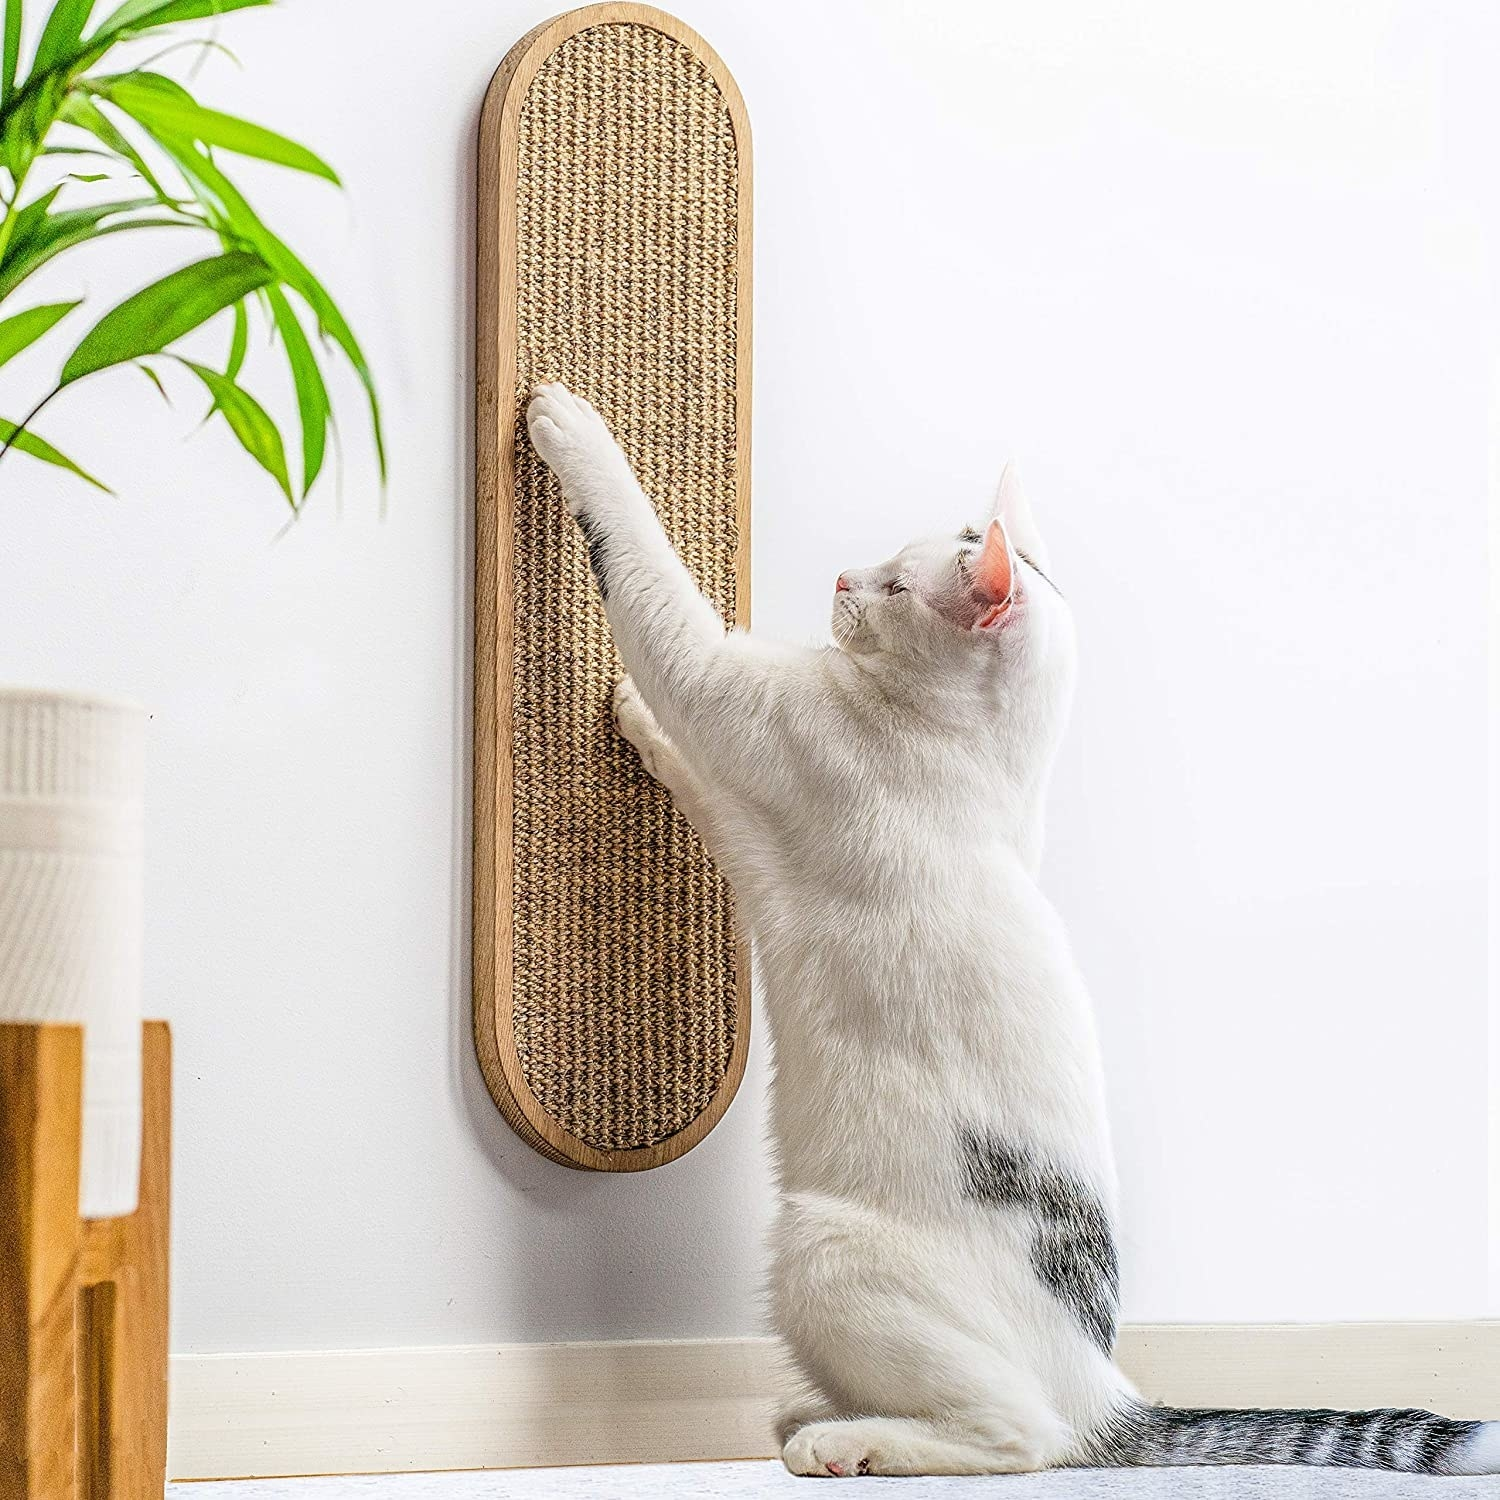 Cat stretching while scratching long oval-shaped natural fiber and wood scratcher